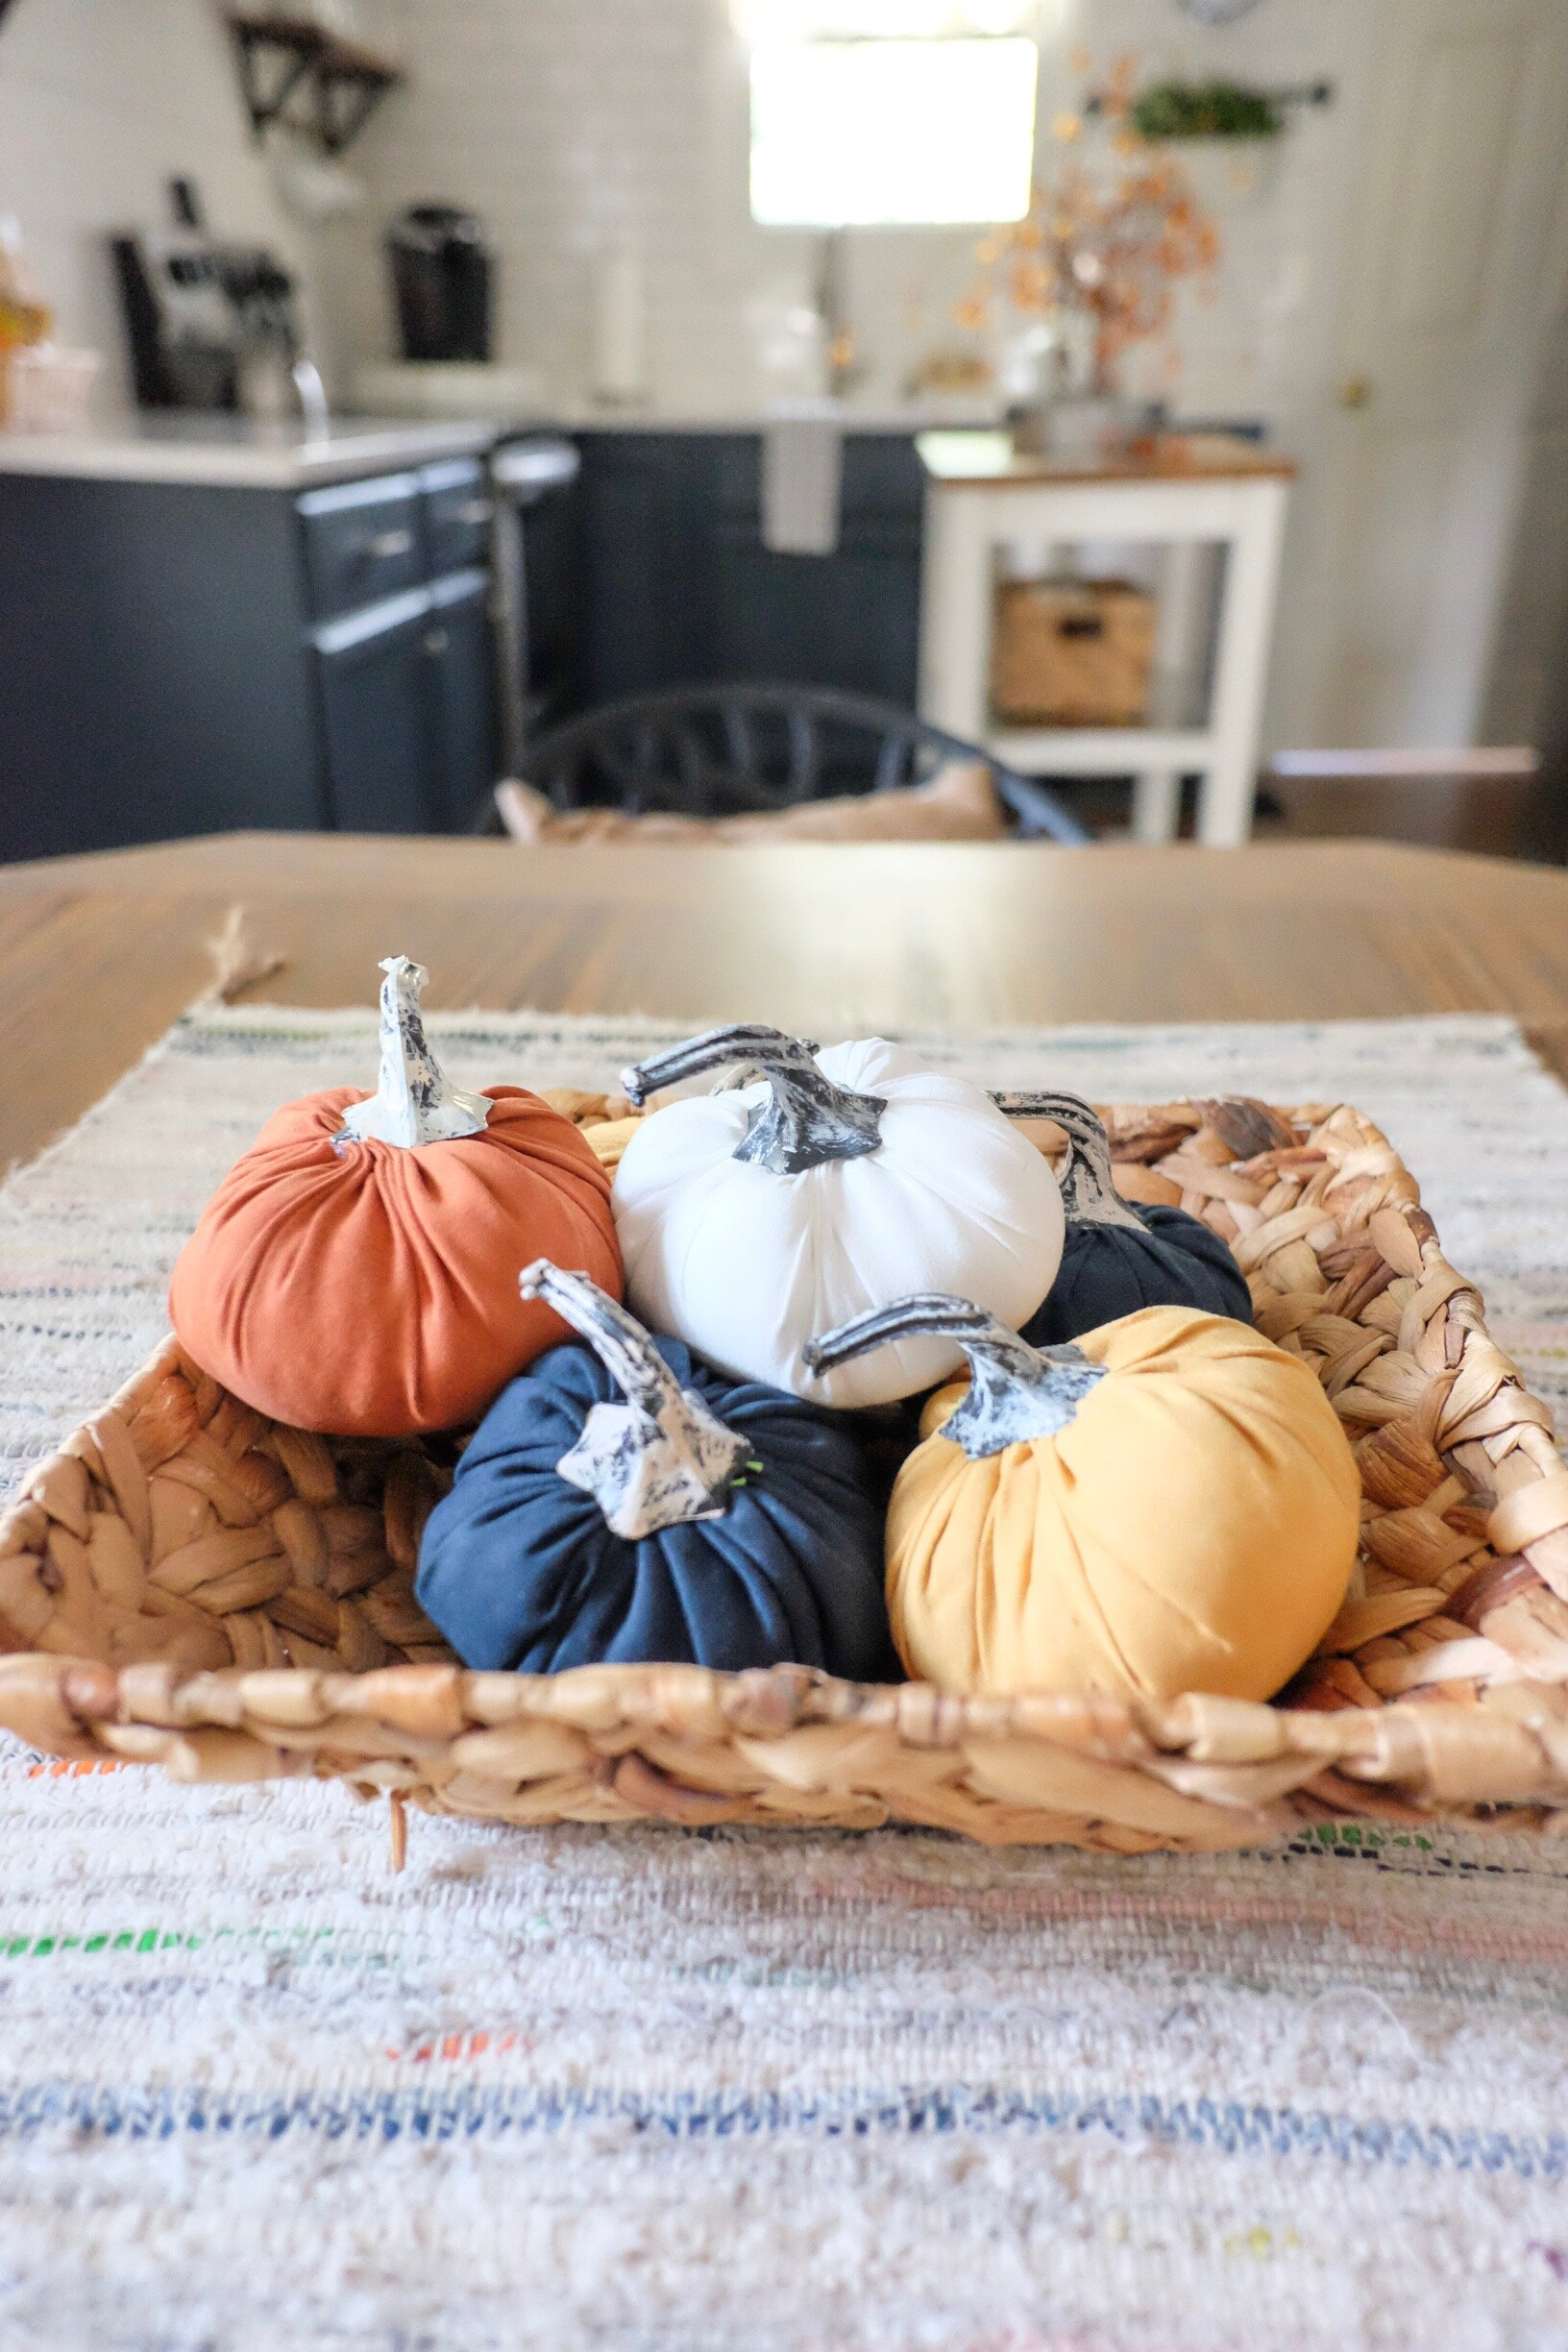 Pumpkins in a basket at our  Midtown Bungalow Airbnb .